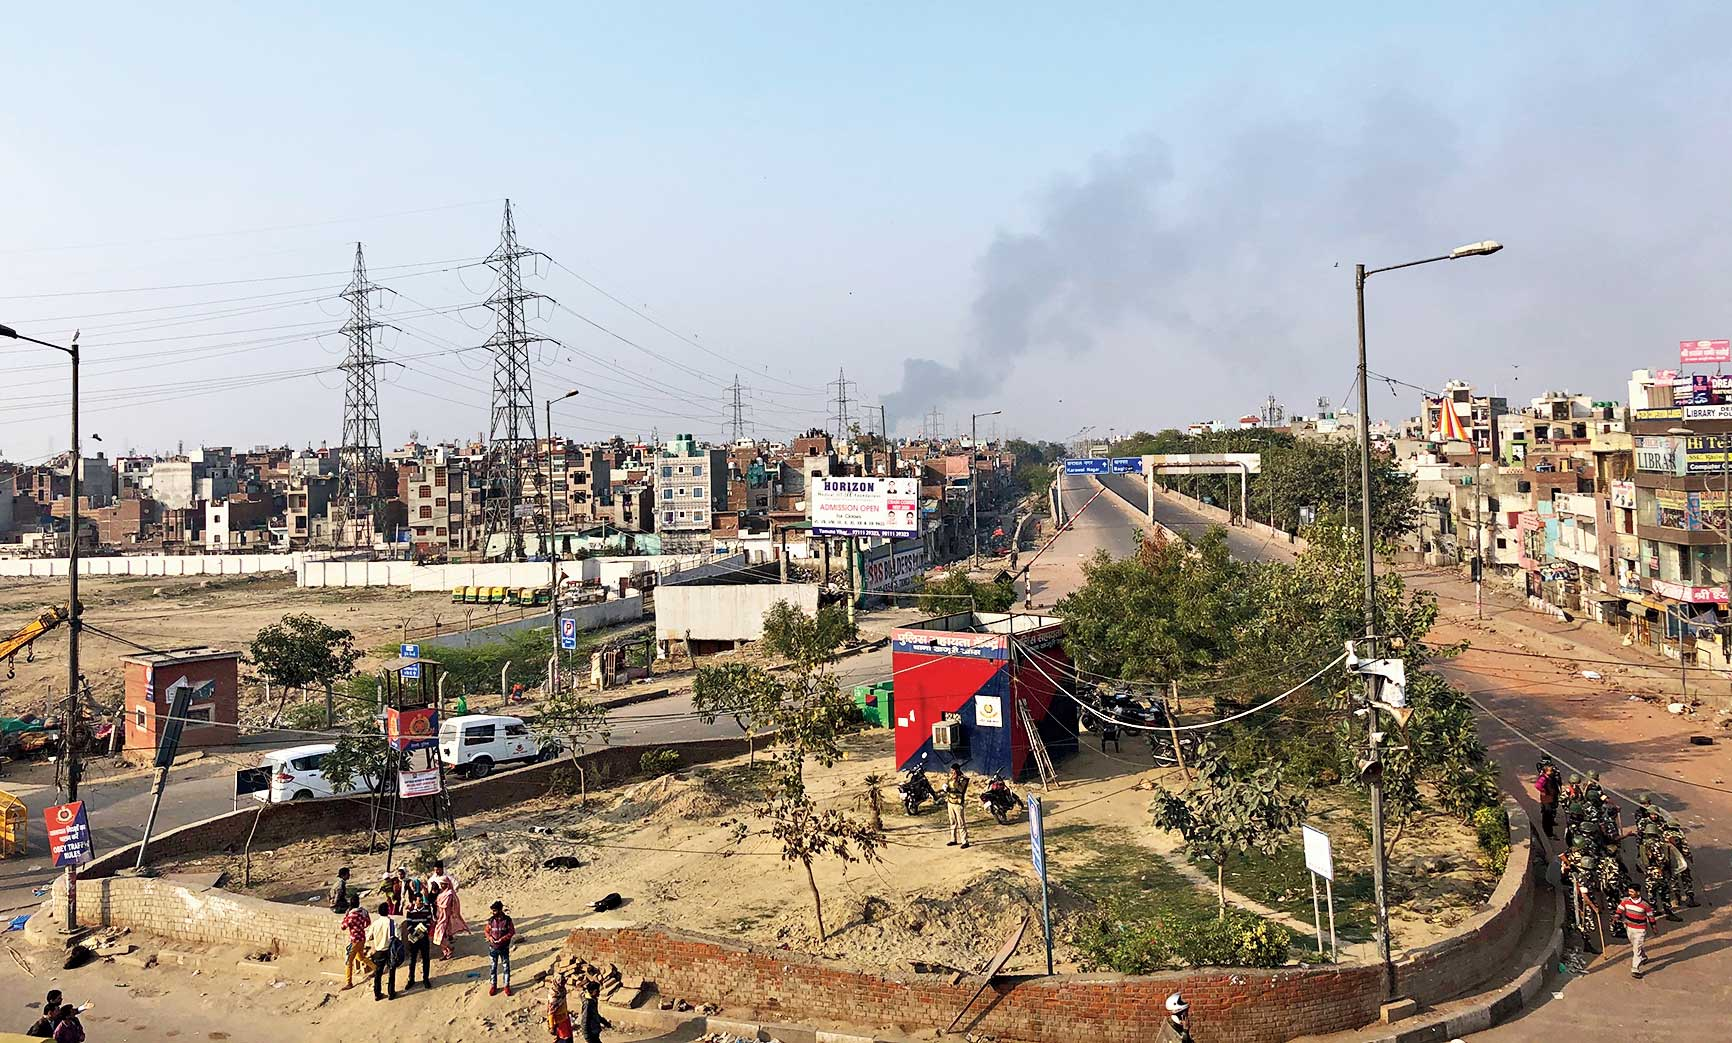 Black smoke rises into the sky after shops are set on fire during the violence in the Bhajanpura area of New Delhi on Tuesday.